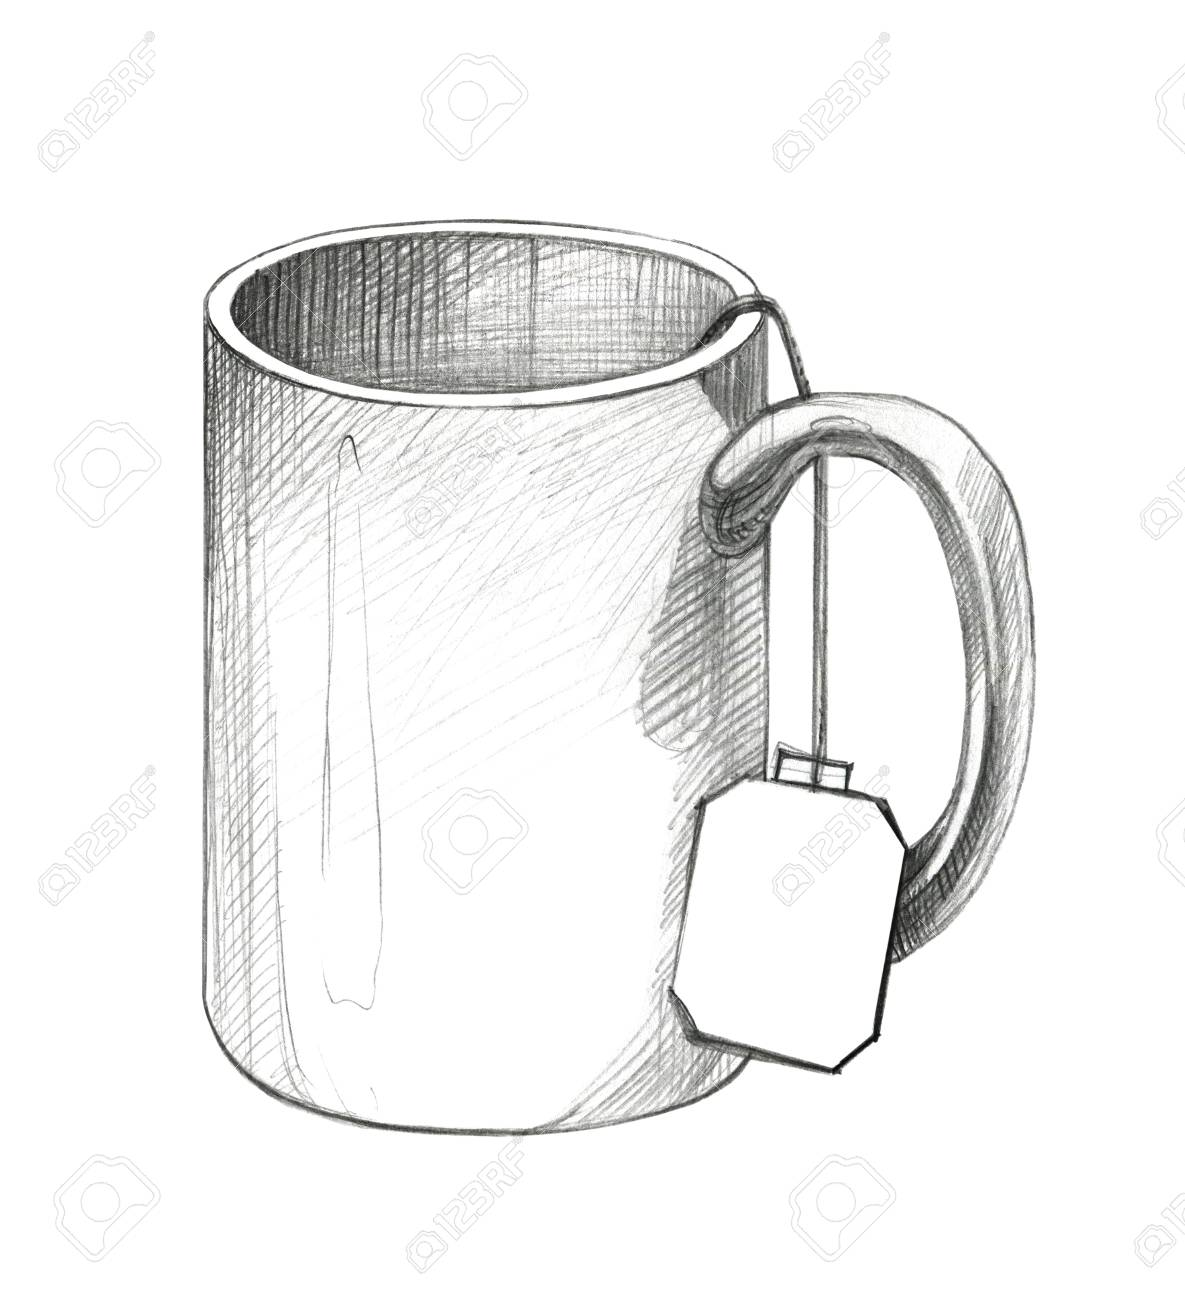 Drawing A Mug With A Label From A Tea Bag Pencil Drawing Isolated Stock Photo Picture And Royalty Free Image Image 90062750